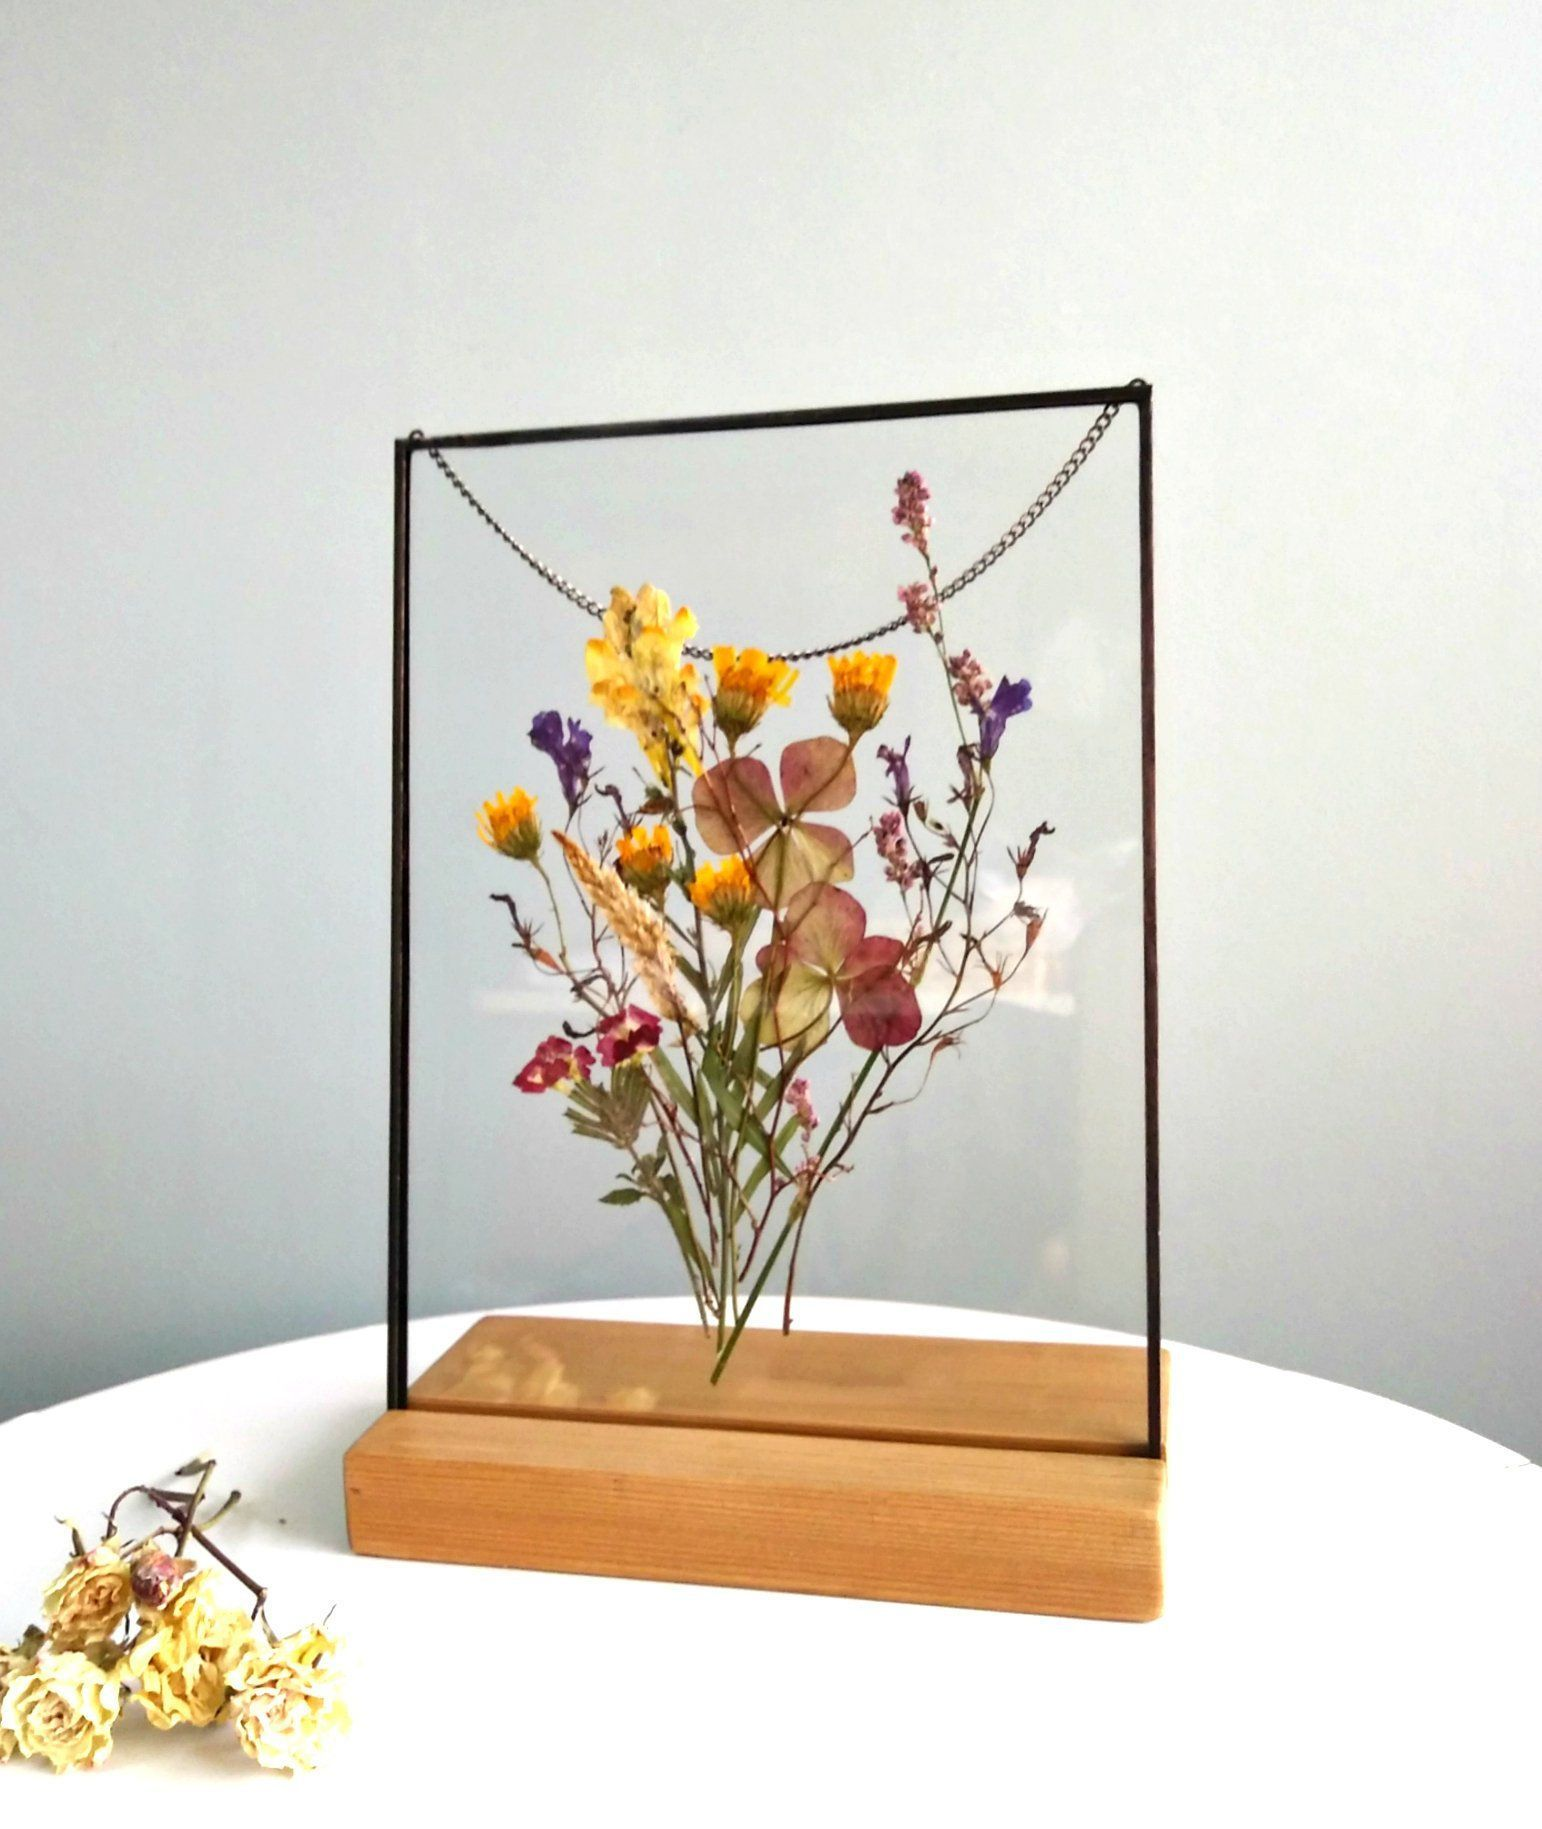 25 Best Diy Picture Frame Ideas Beautiful Unique And Cool Pressed Flowers Frame Floating Flowers Pressed Flowers